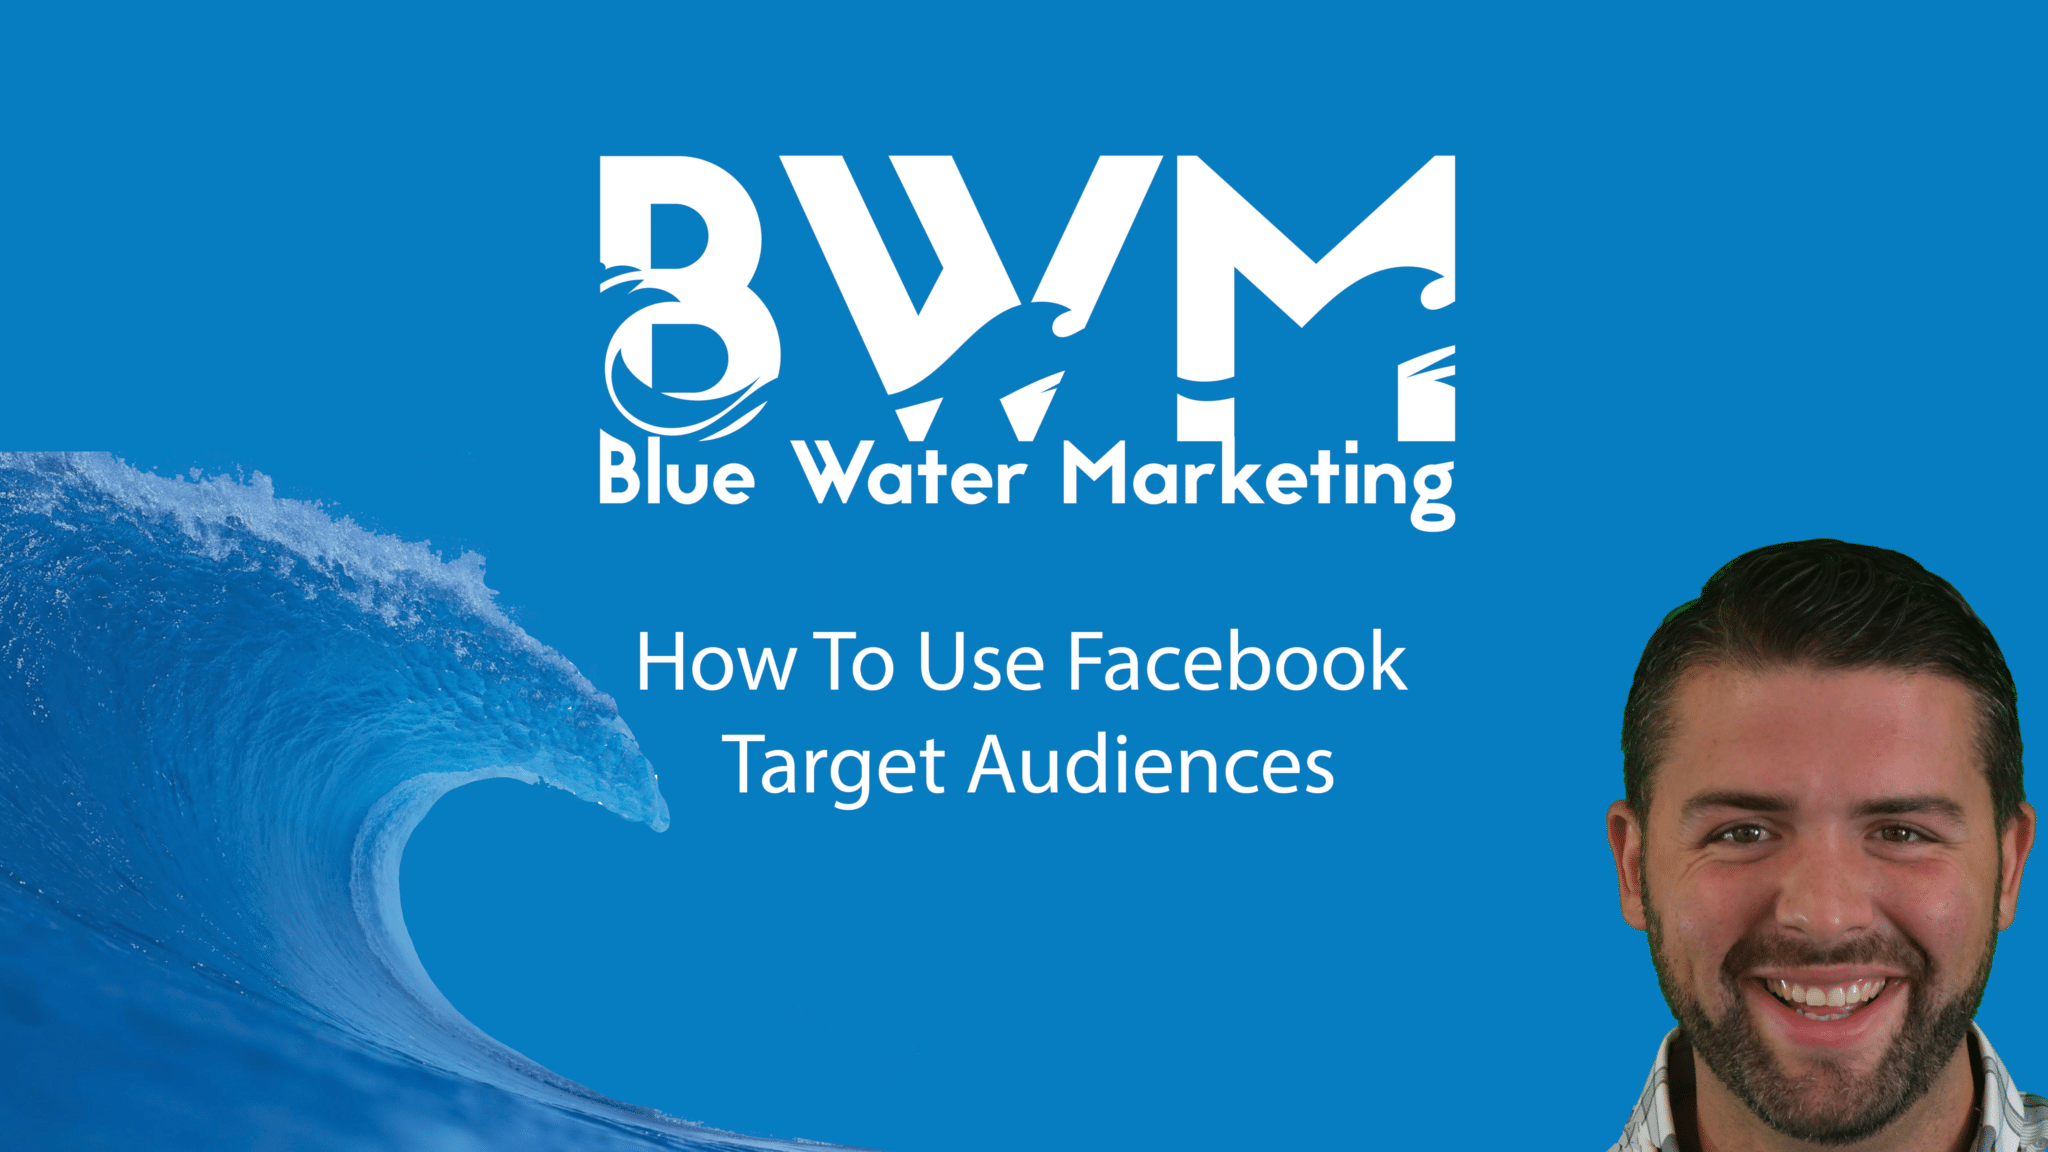 How To Use Facebook Target Audiences